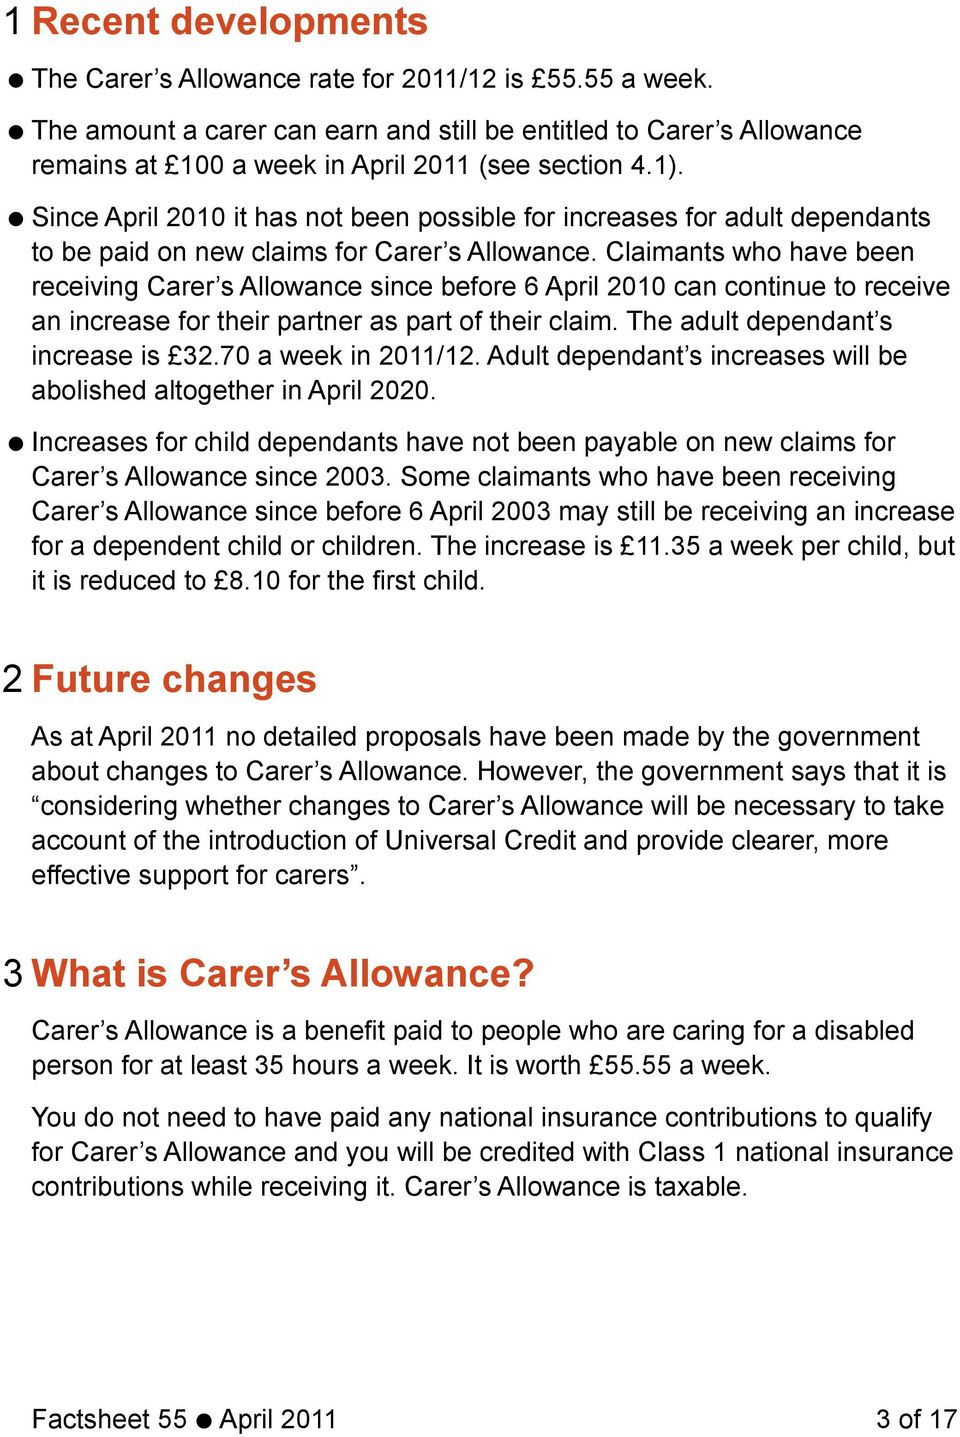 Claimants who have been receiving Carer s Allowance since before 6 April 2010 can continue to receive an increase for their partner as part of their claim. The adult dependant s increase is 32.